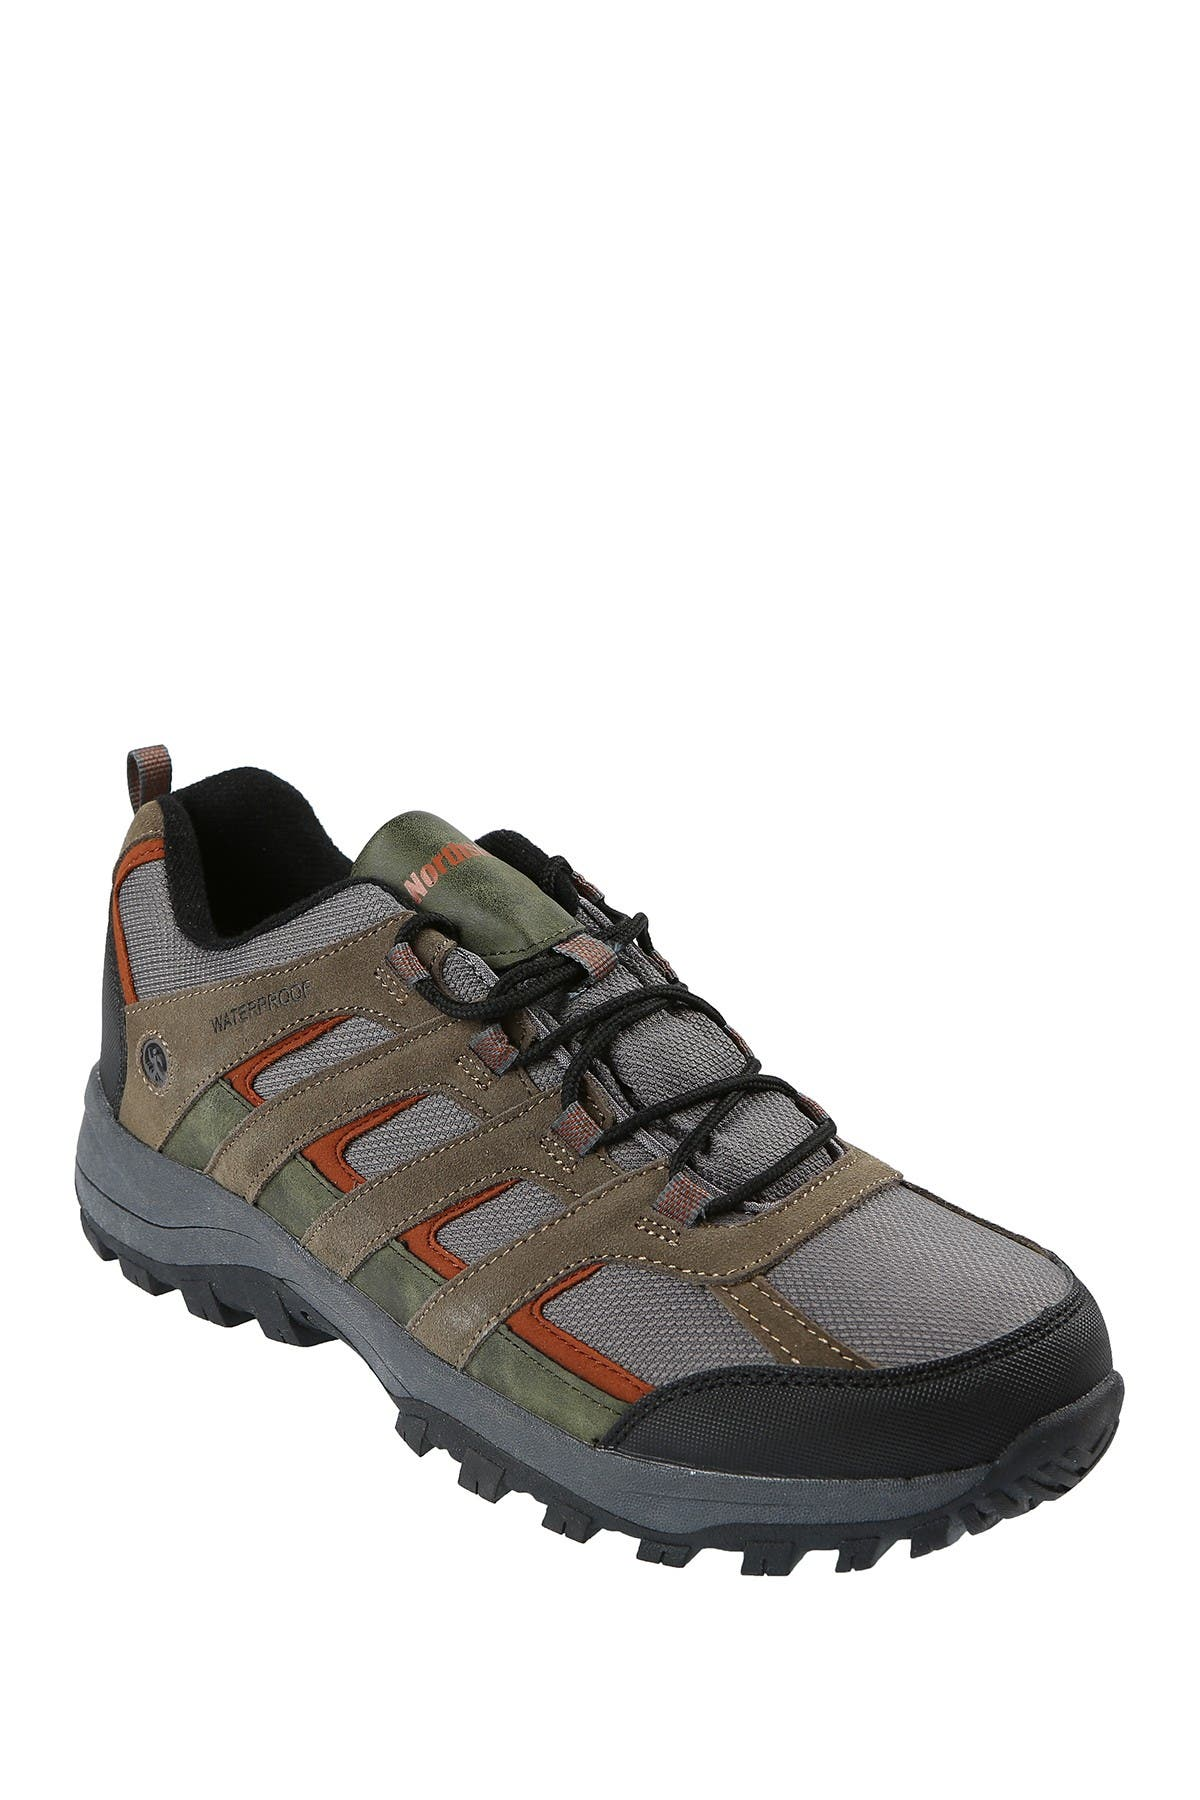 Image of NORTHSIDE Gresham Waterproof Hiking Shoe